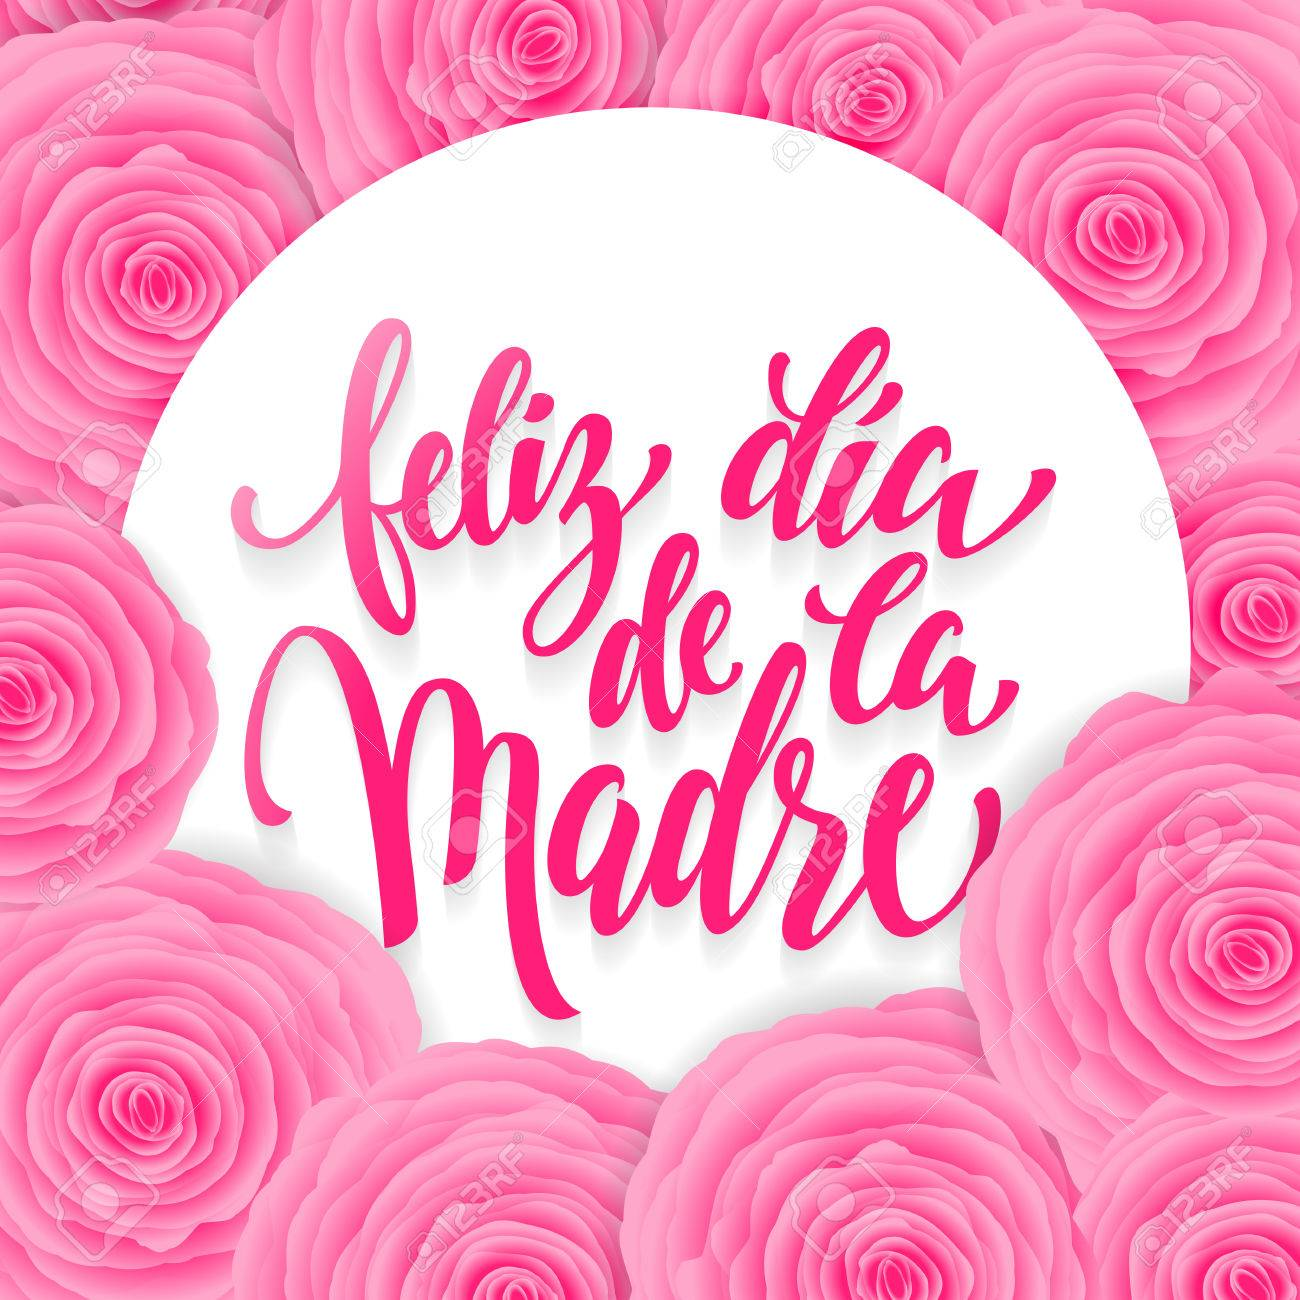 Feliz Dia De La Madre Mothers Day Greeting Card Pink Red Floral Royalty Free Cliparts Vectors And Stock Illustration Image 54729648